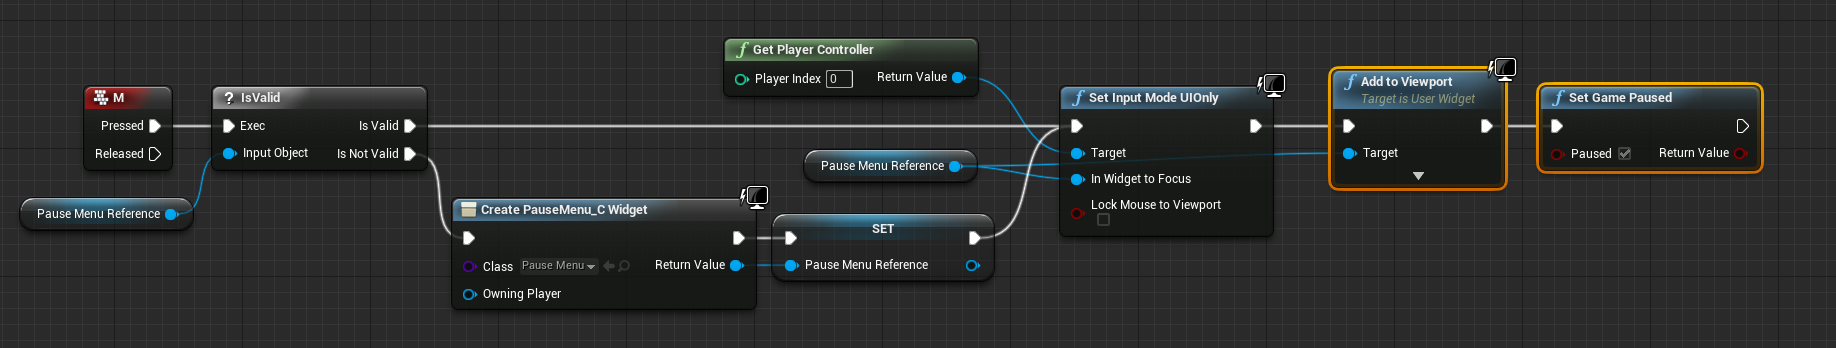 5 creating scripting an in game pause menu unreal engine ue4 creating scripting an in game pause menu unreal engine malvernweather Gallery